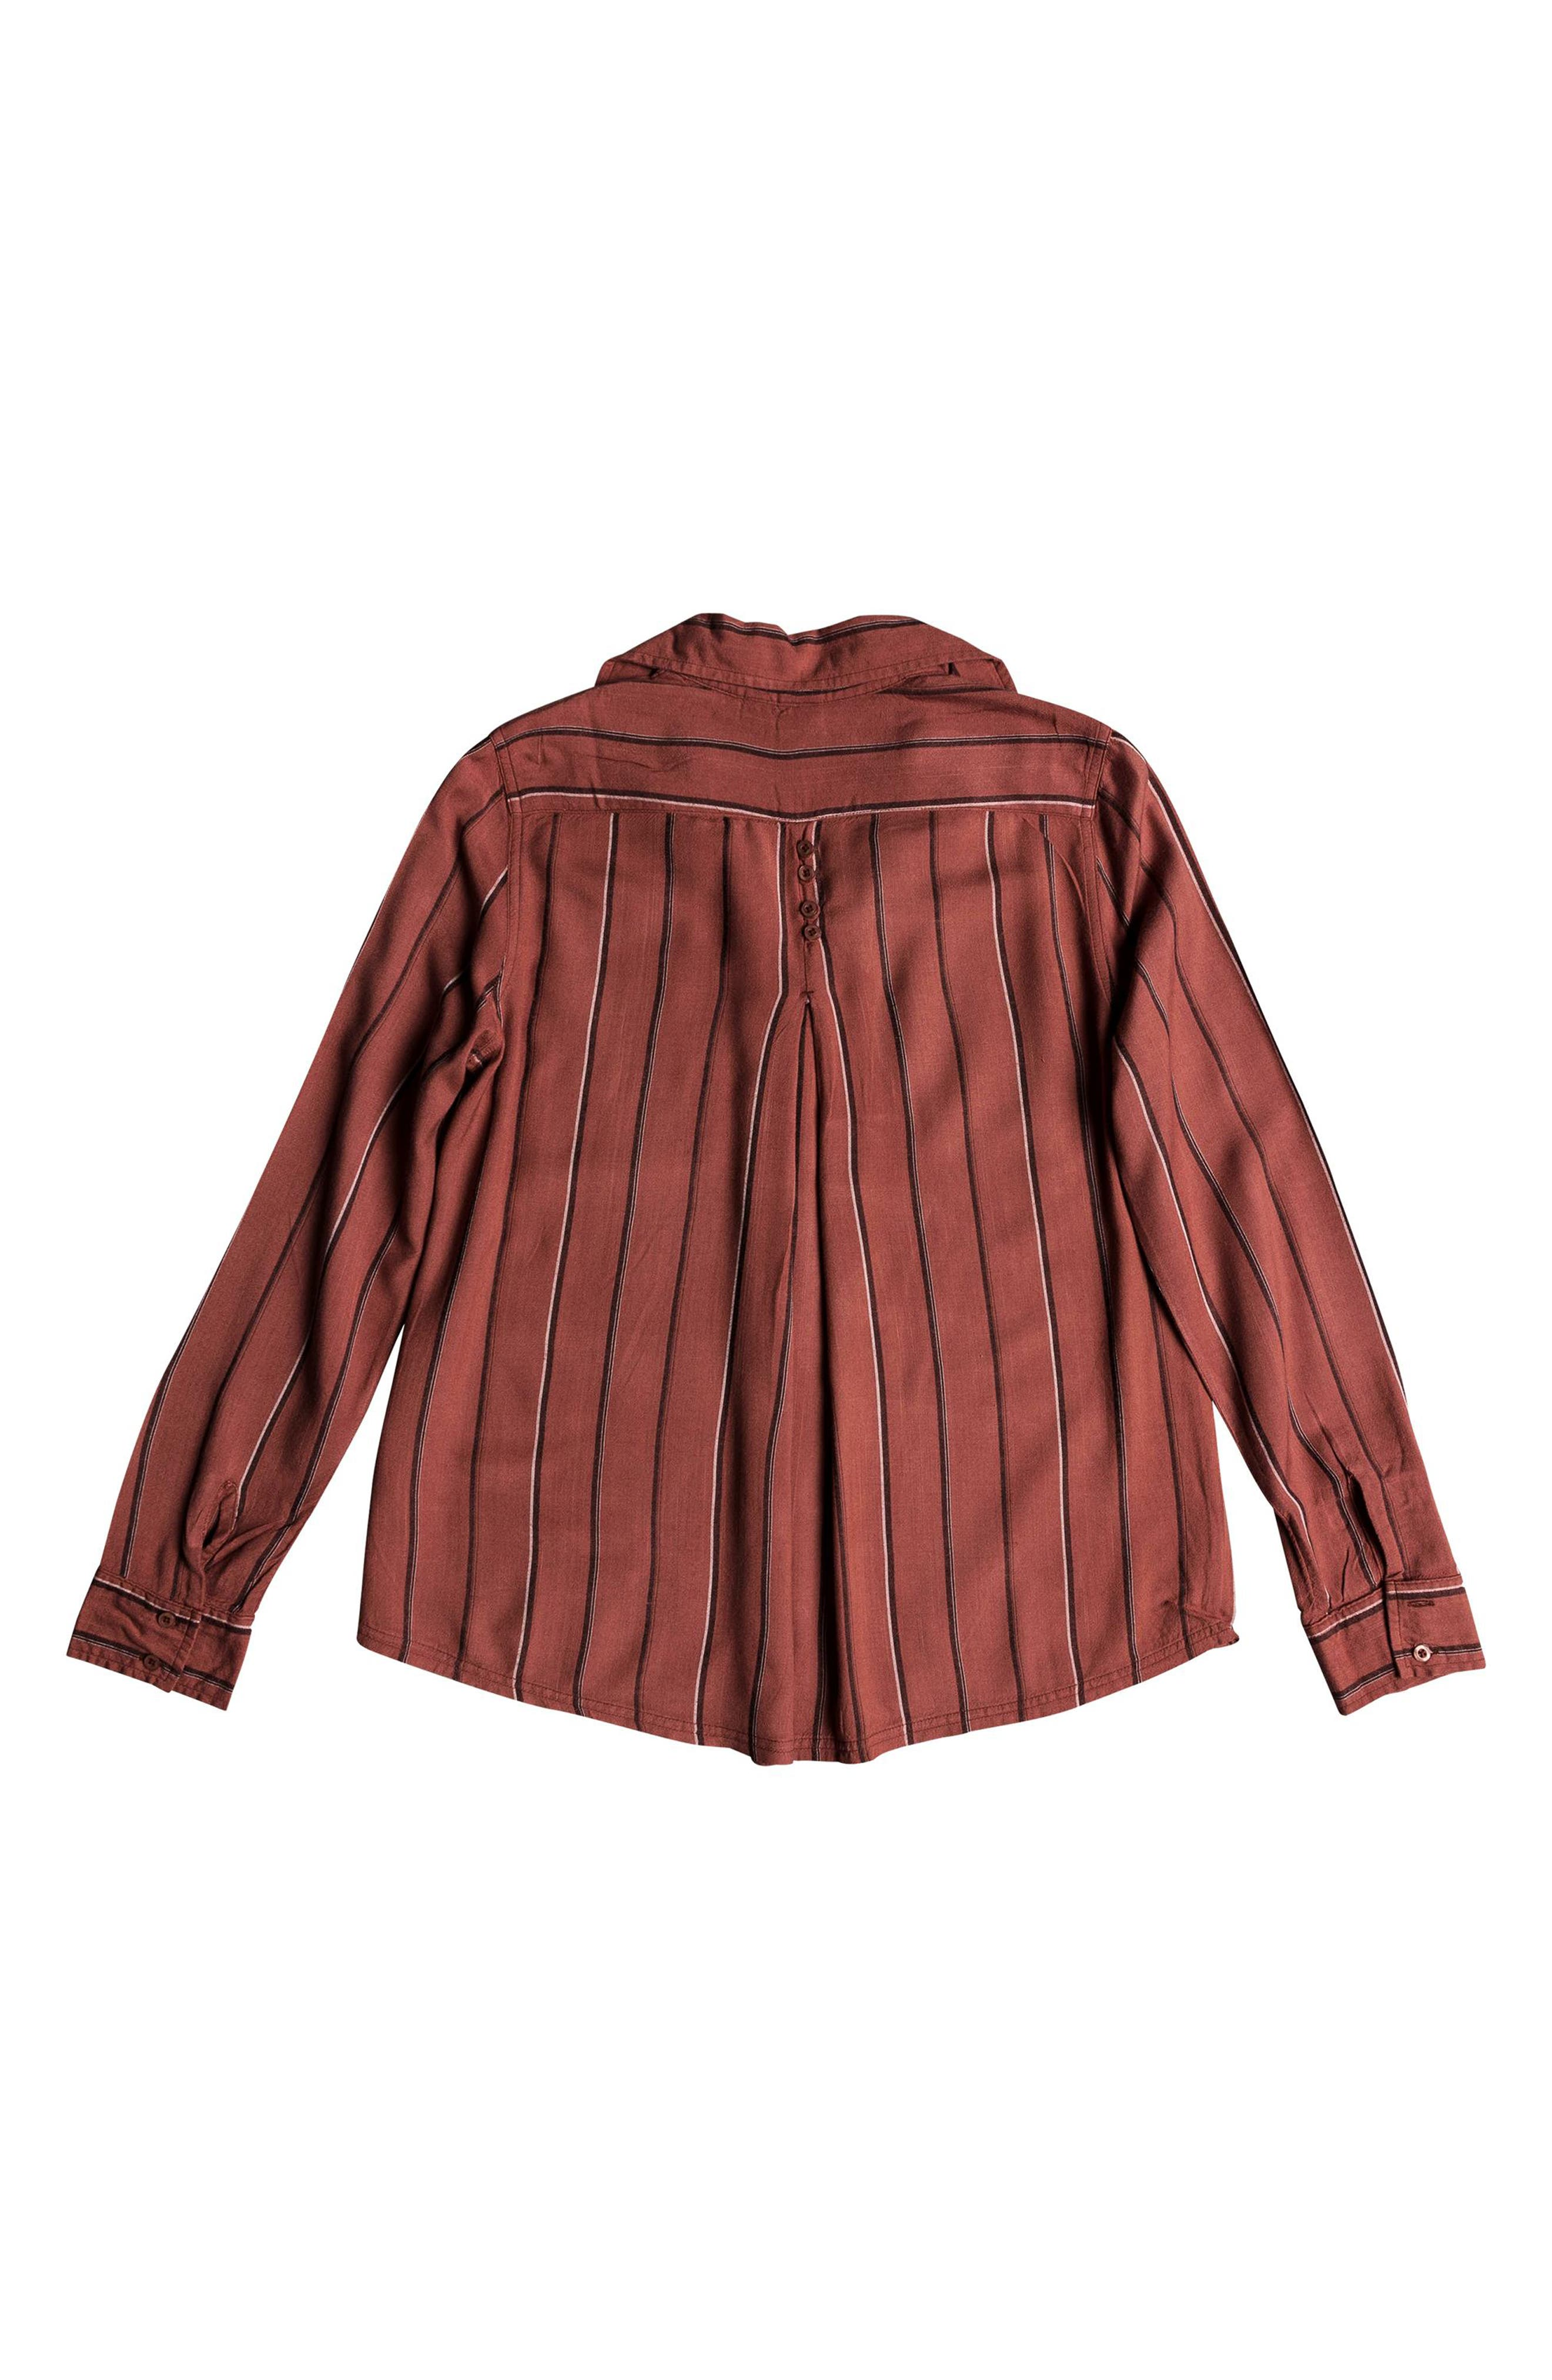 Concrete Streets Stripe Shirt,                             Alternate thumbnail 5, color,                             WITHERED ROSE